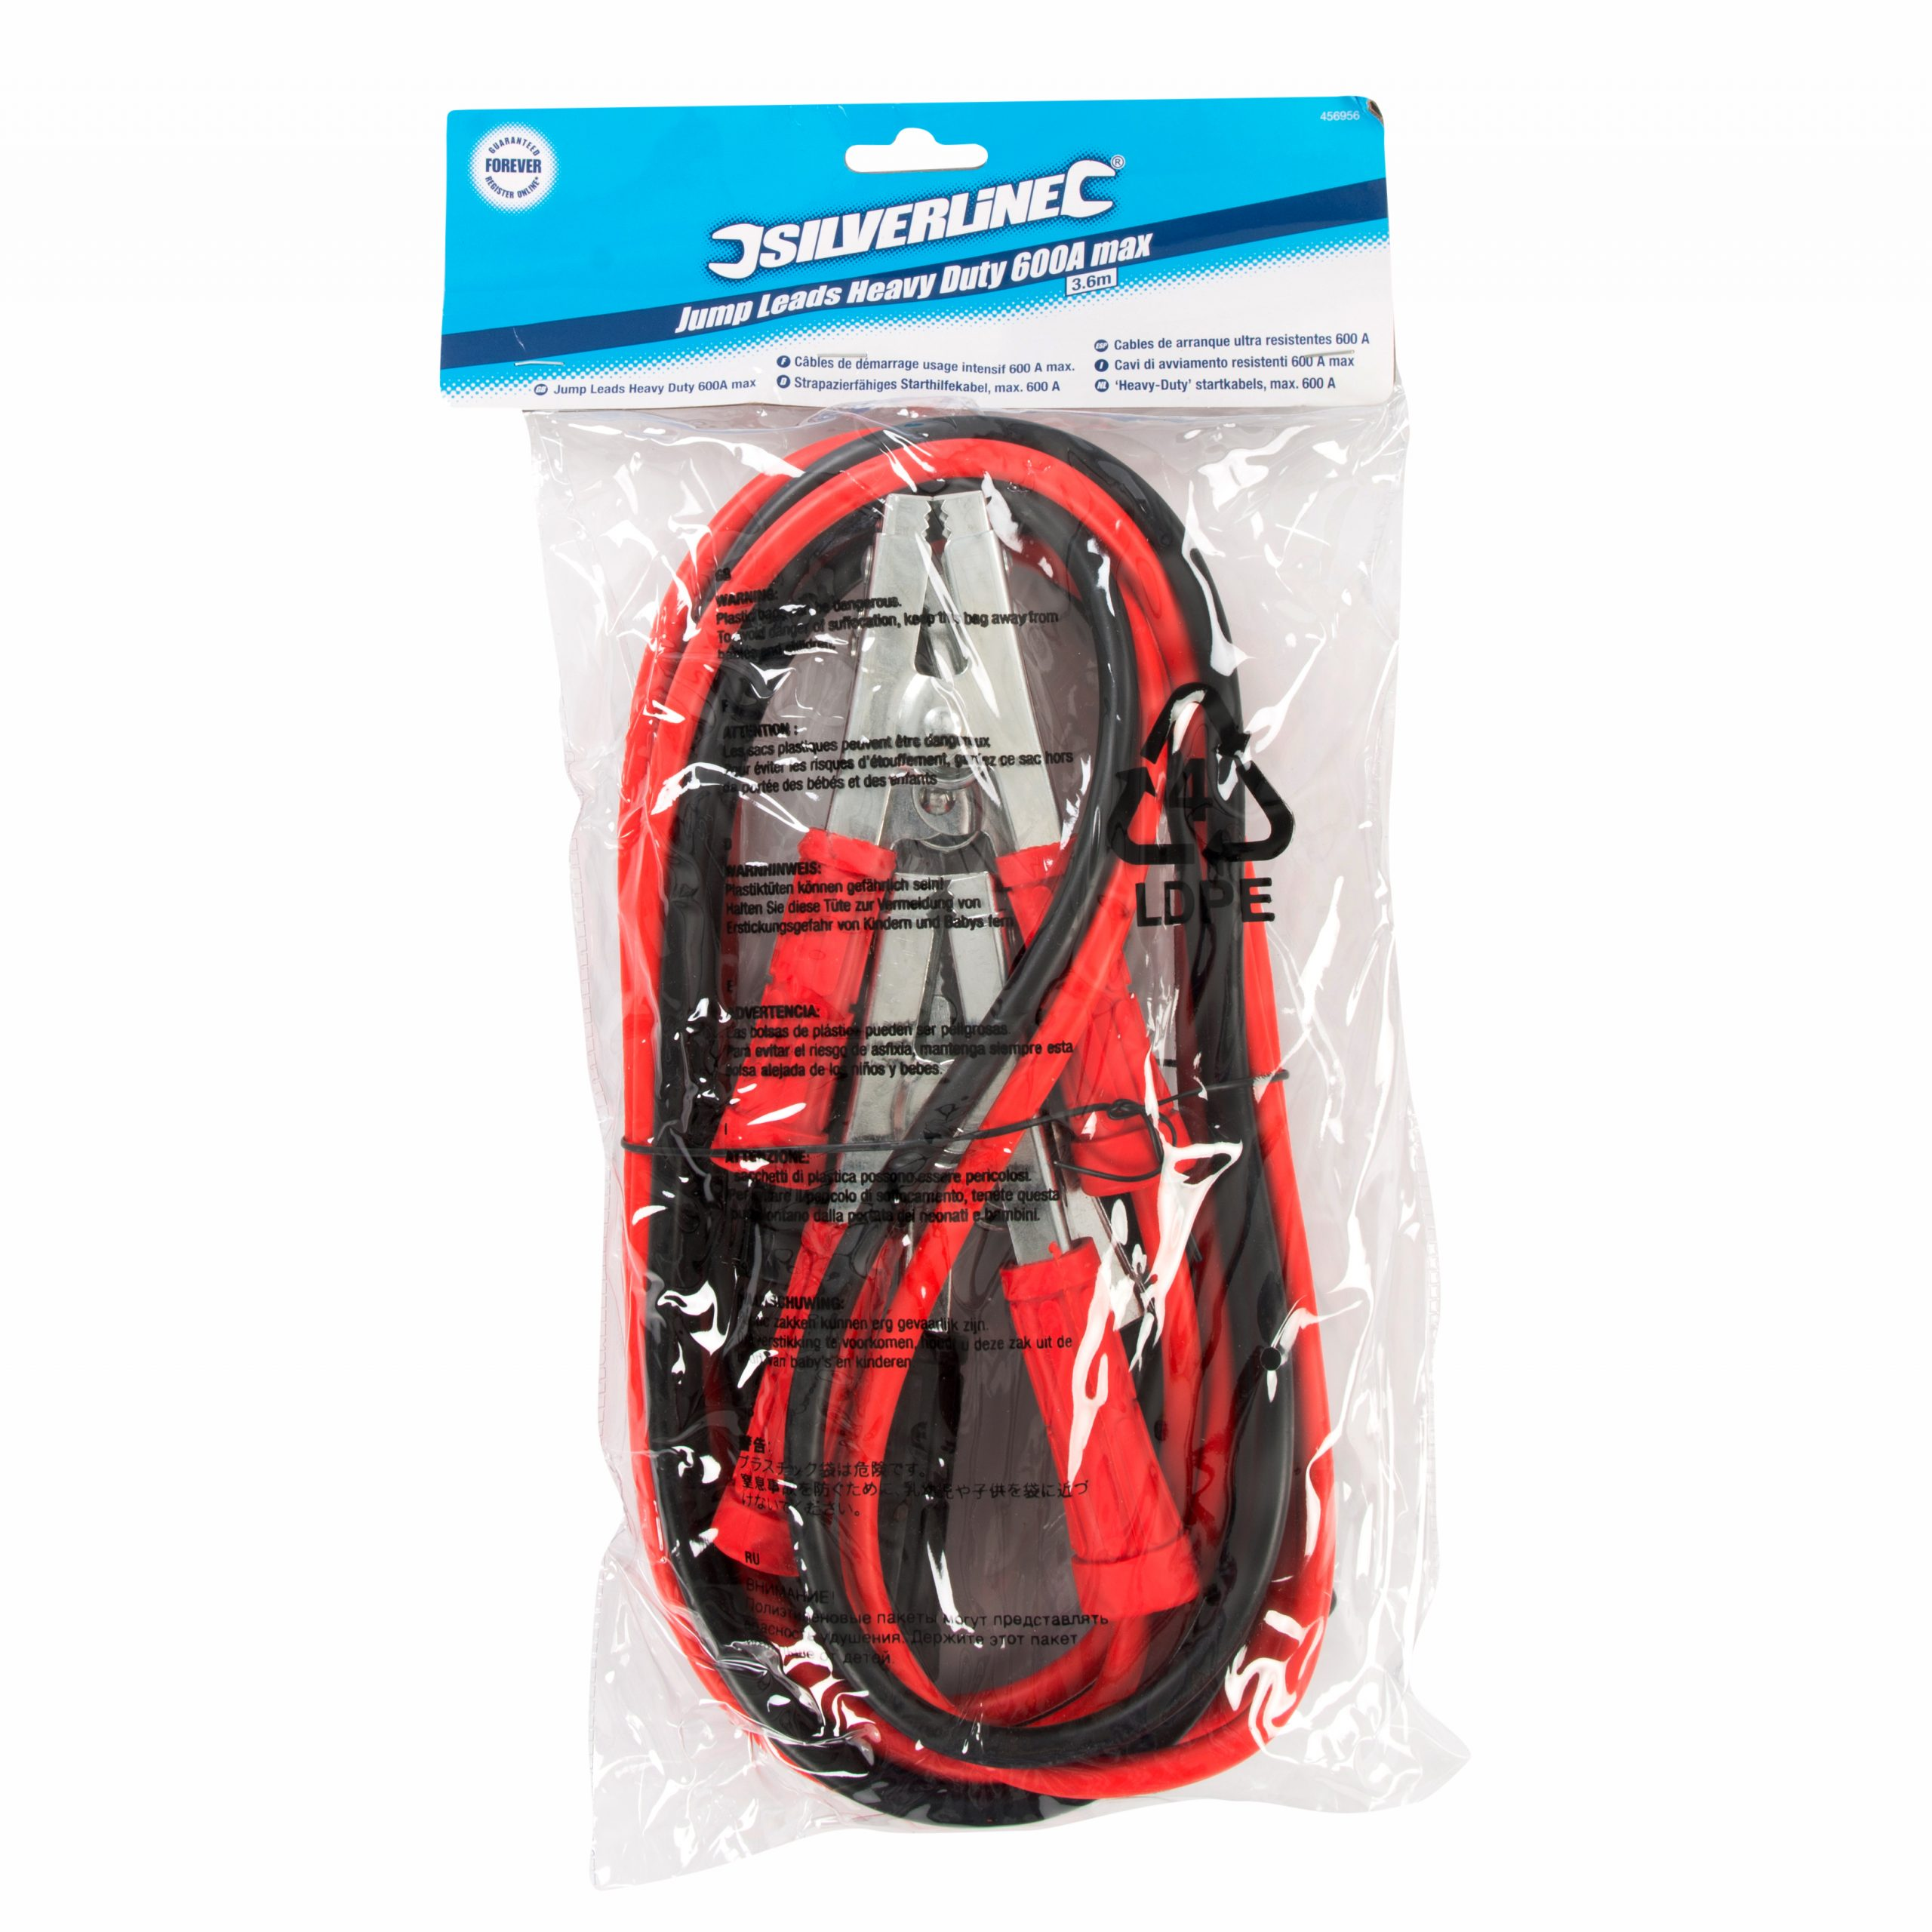 Jump Leads 600A max 3.6m PVC-Insulated Cable for efficient Power Conduction with Fully Insulated Spring-Loaded connectors Suitable for Vehicles with a Battery Start-up Power of up to 600A.